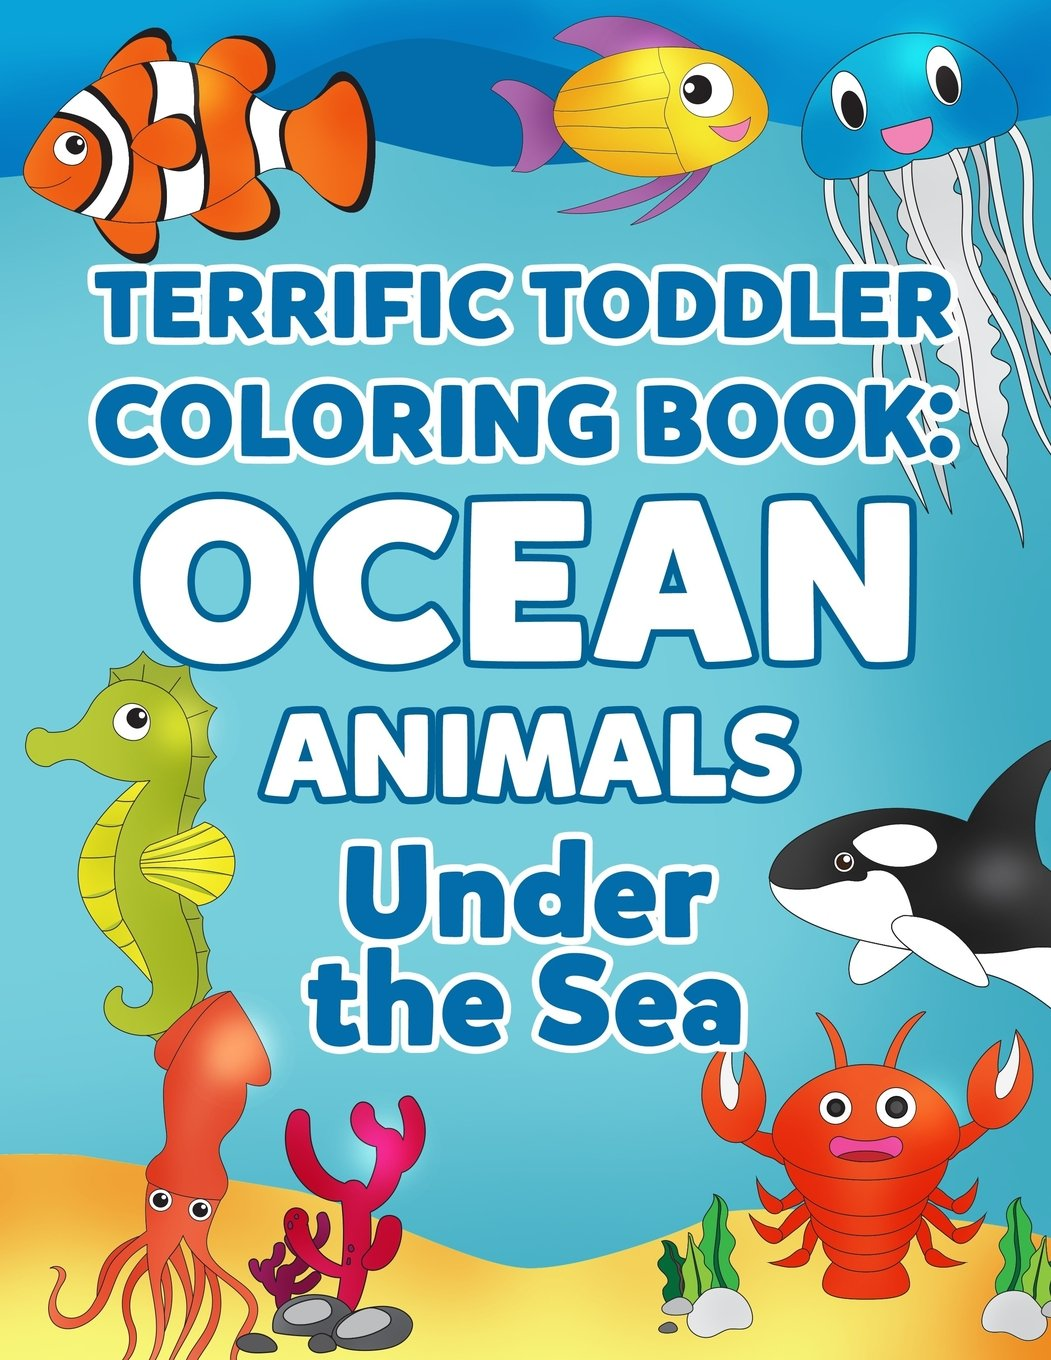 Coloring Books for Toddlers: Ocean Animal Coloring Book for ...